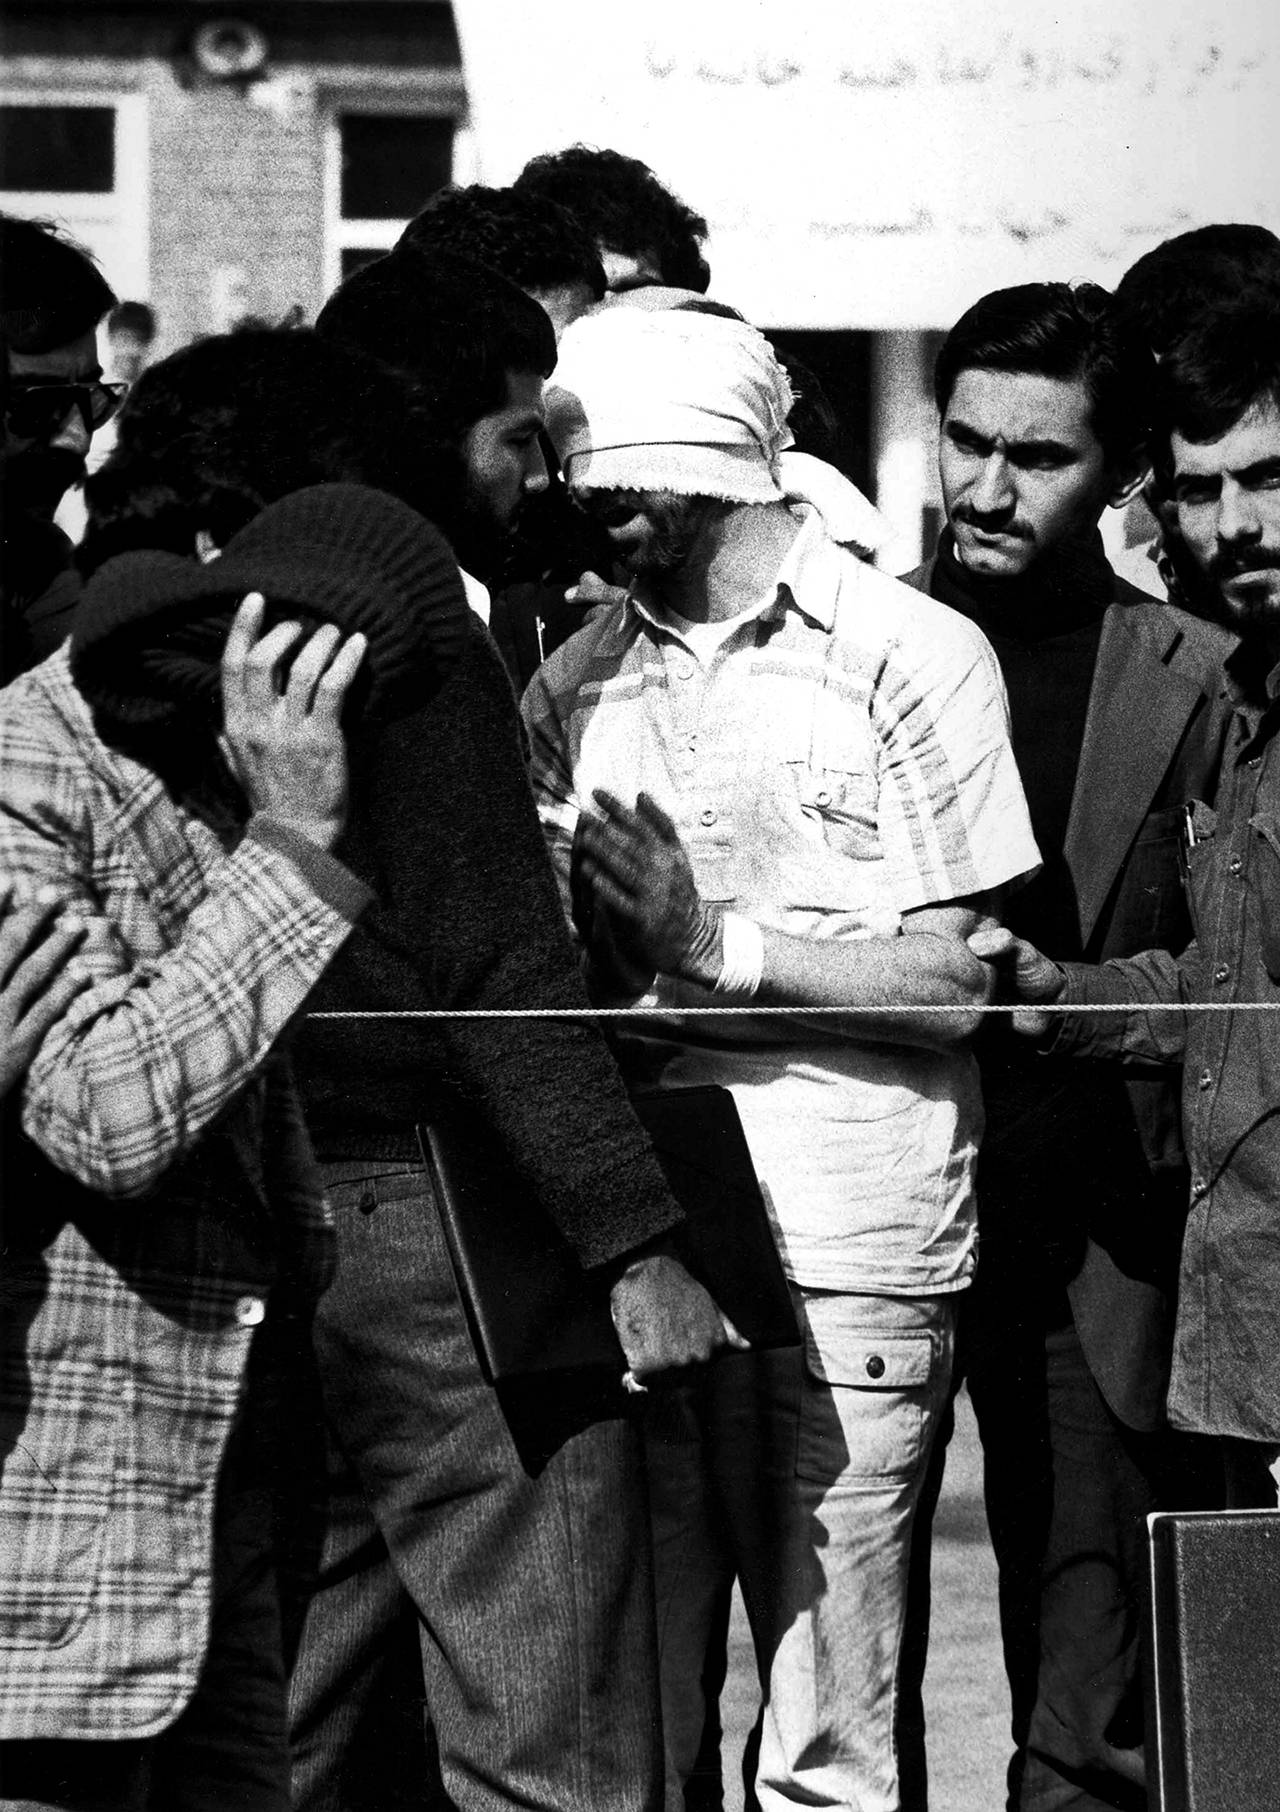 In this undated image, one of U.S. hostages, blindfolded and with his hands bound, is being displayed to the crowd outside the U.S. Embassy in Tehran by Iranian hostage takers. (AP Photo)